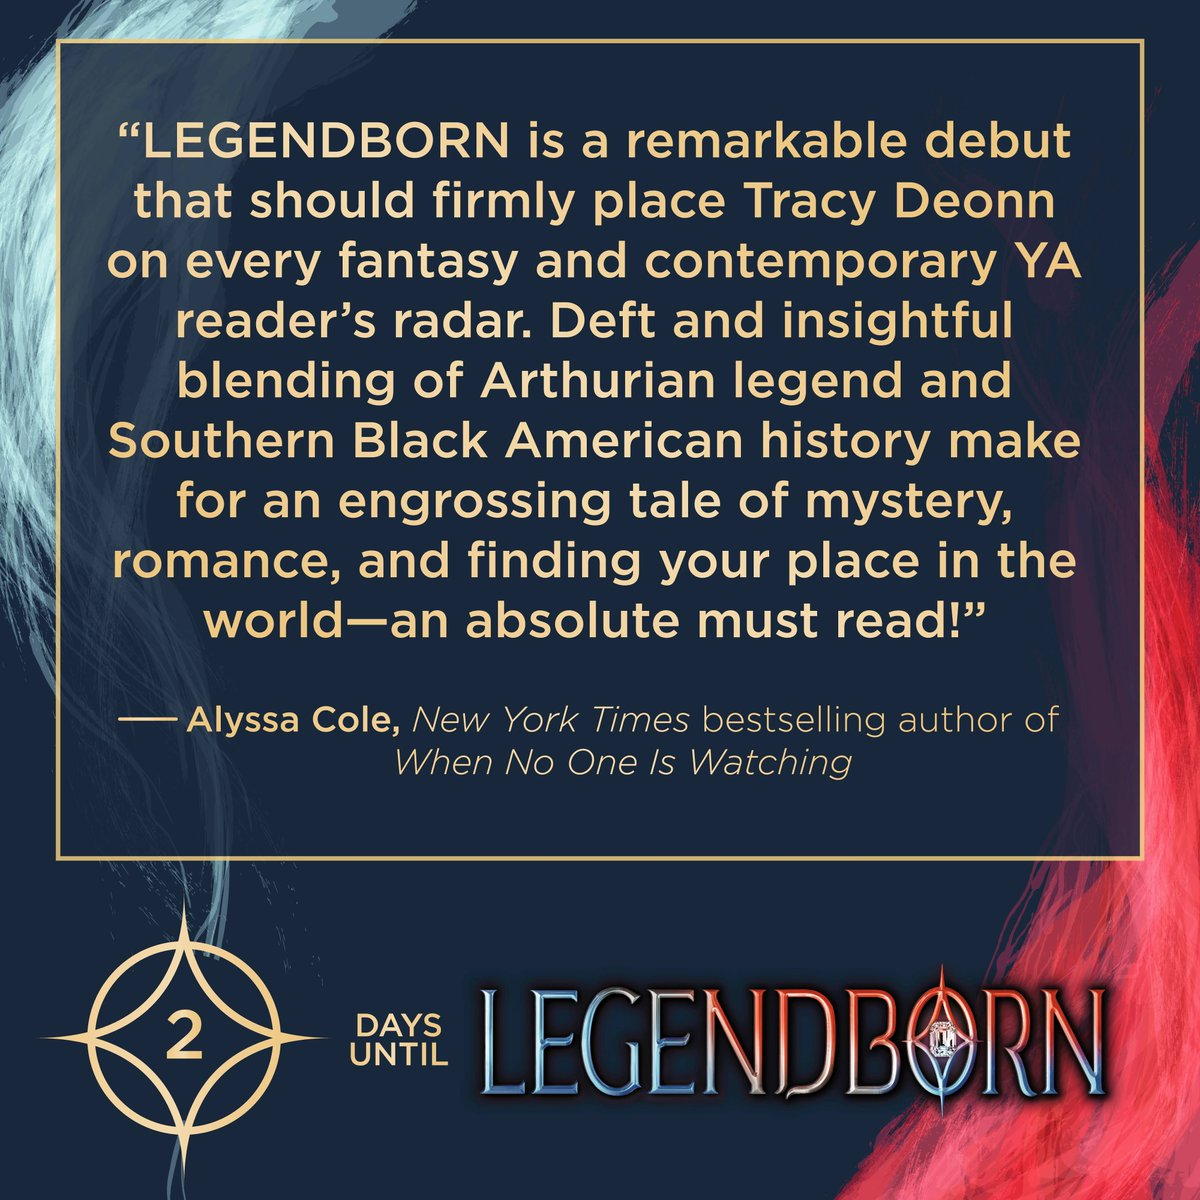 💫TWO MORE DAYS💫 until the LEGENDBORN universe begins! Counting down with my faves, @AlyssaColeLit! 👀Peep that edit with her NYT Bestseller status! 🙌🏽 Taking a little social media break today while I can. As always, RTs and pre-orders appreciated! 💙 bit.ly/2MncaBM